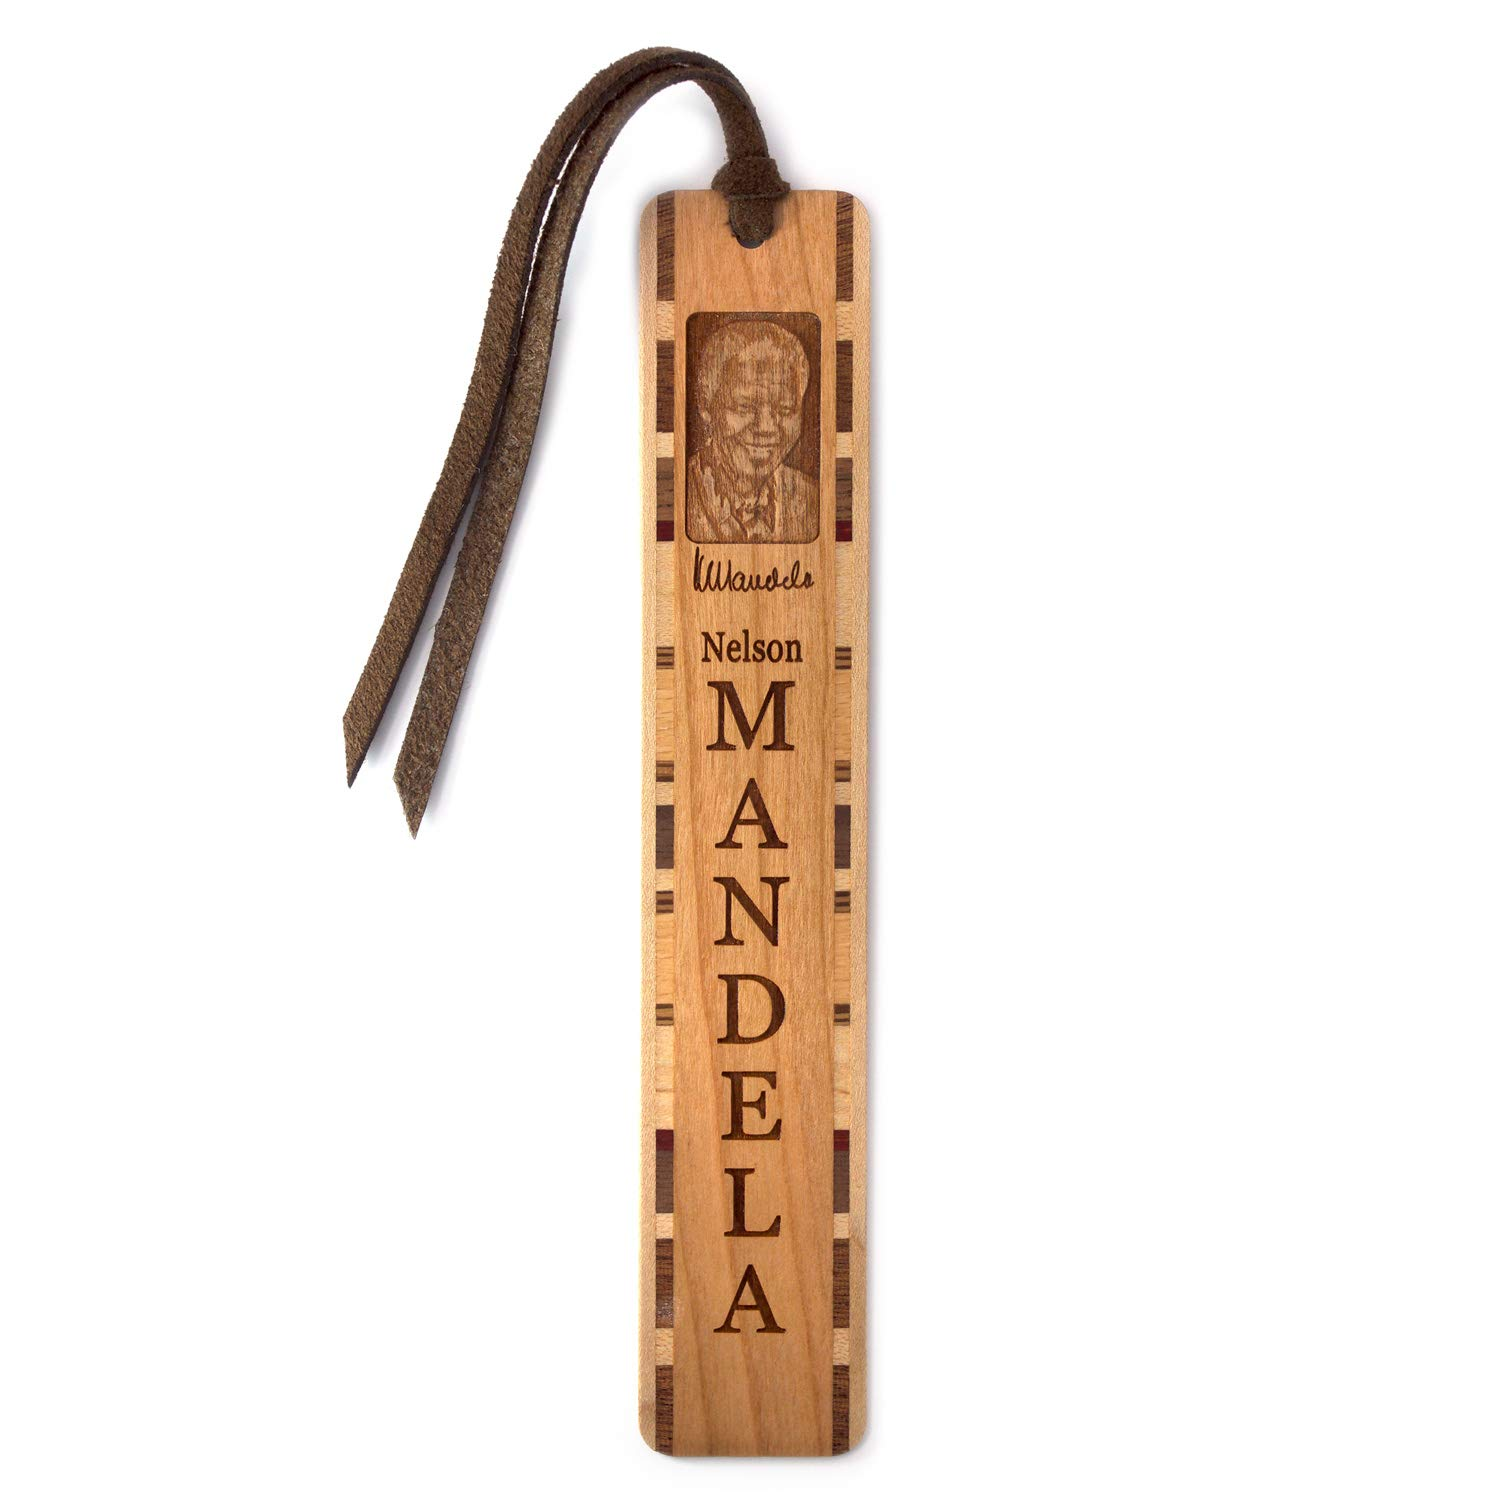 Nelson Mandela Portrait with Name and Signature - Engraved Handmade Wooden Bookmark with Suede Tassel